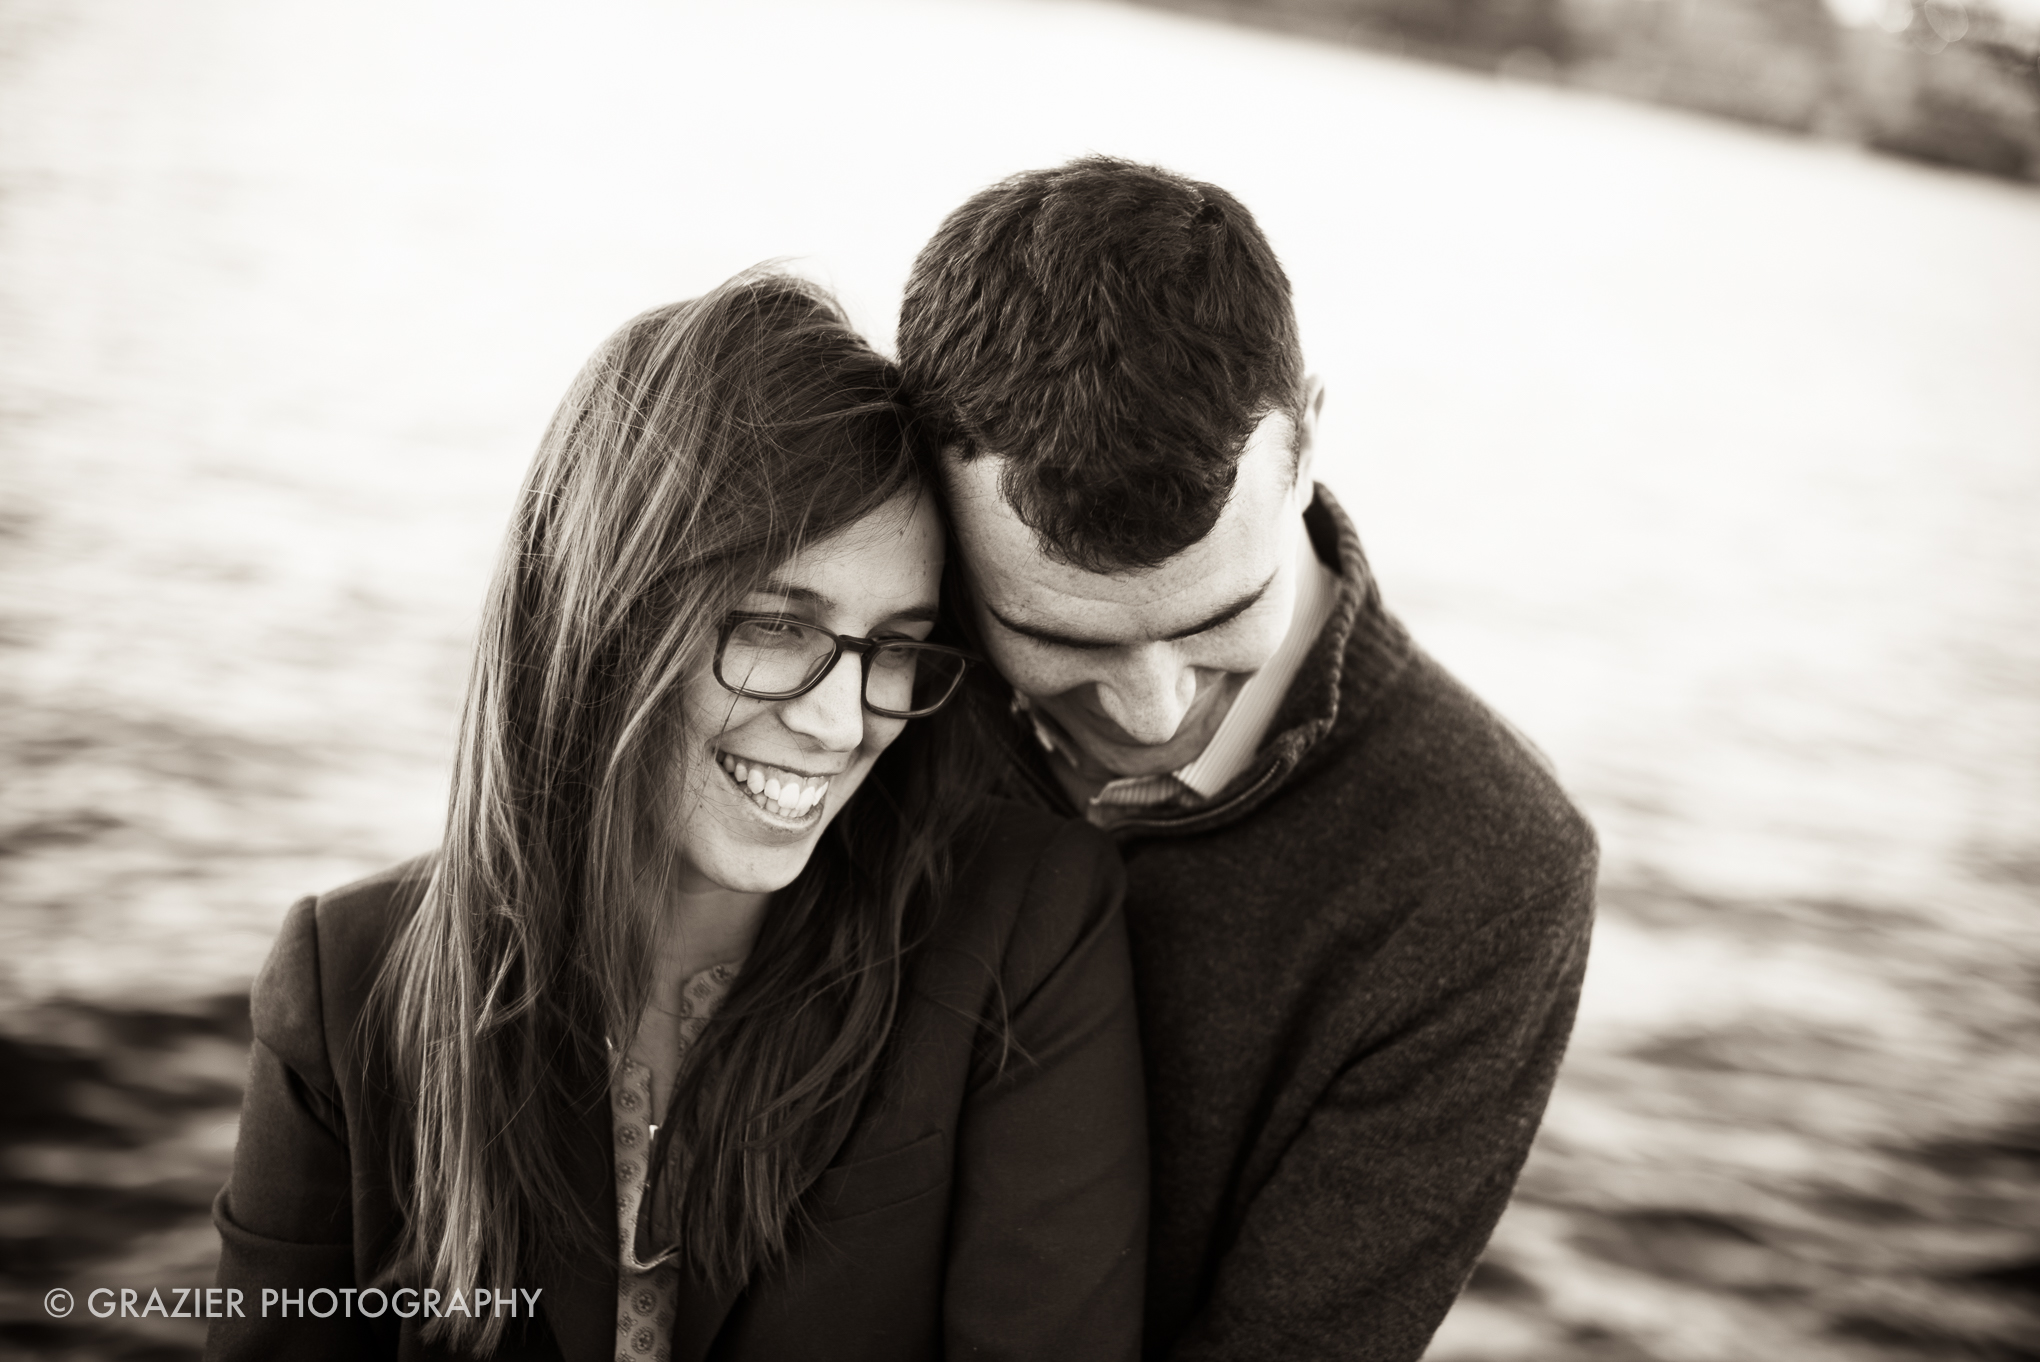 Grazier_Photography_Boston_Engagement_160430_114.jpg